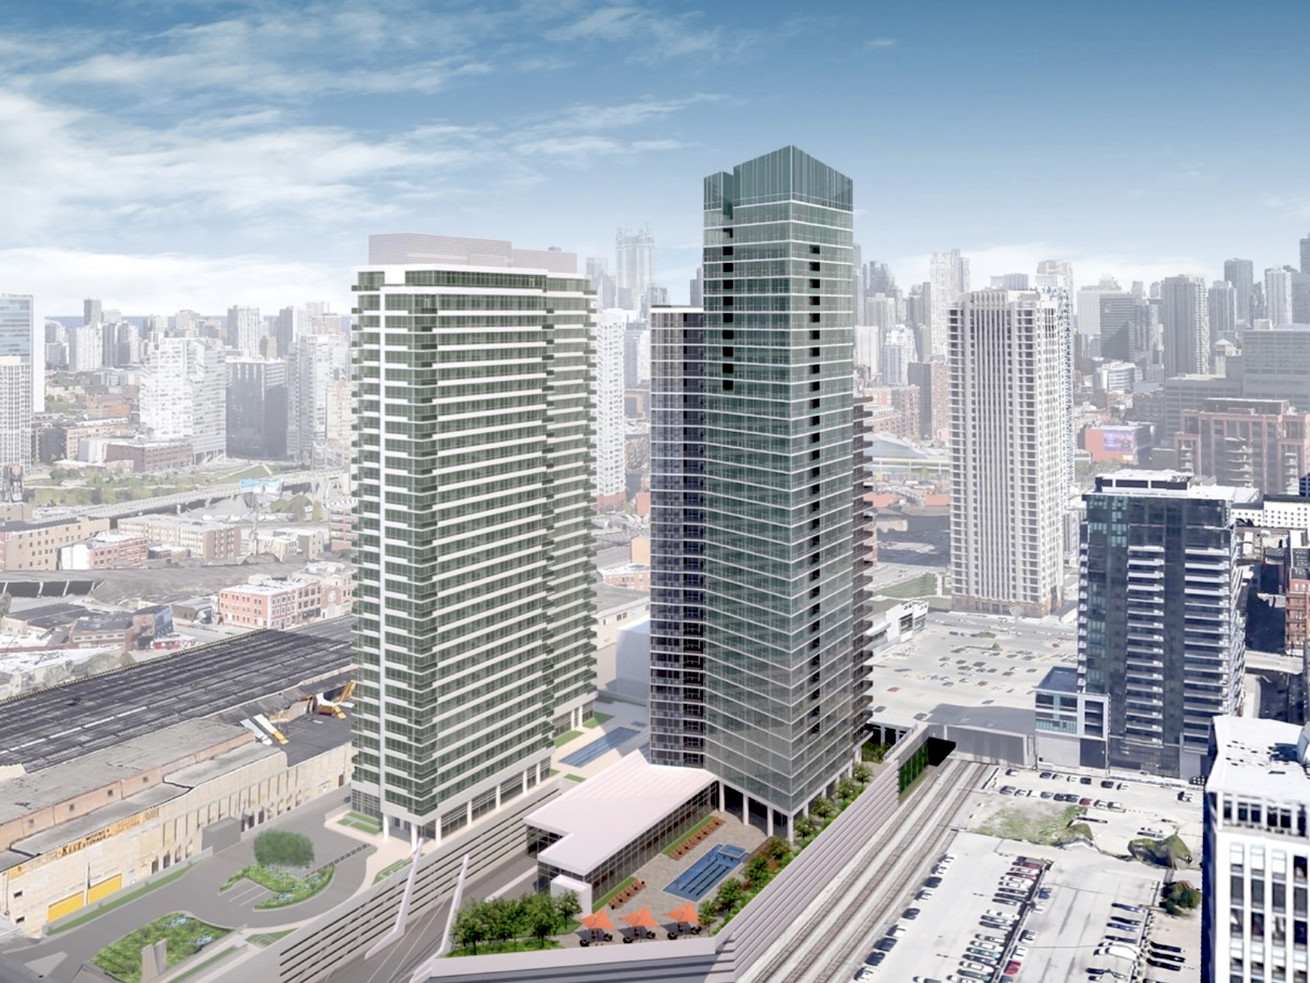 A rendering showing a glassy high-rise tower with an angled crown next to a shorter high-rise. The buildings stand next to train tracks and tall buildings stand in a row in the distance.